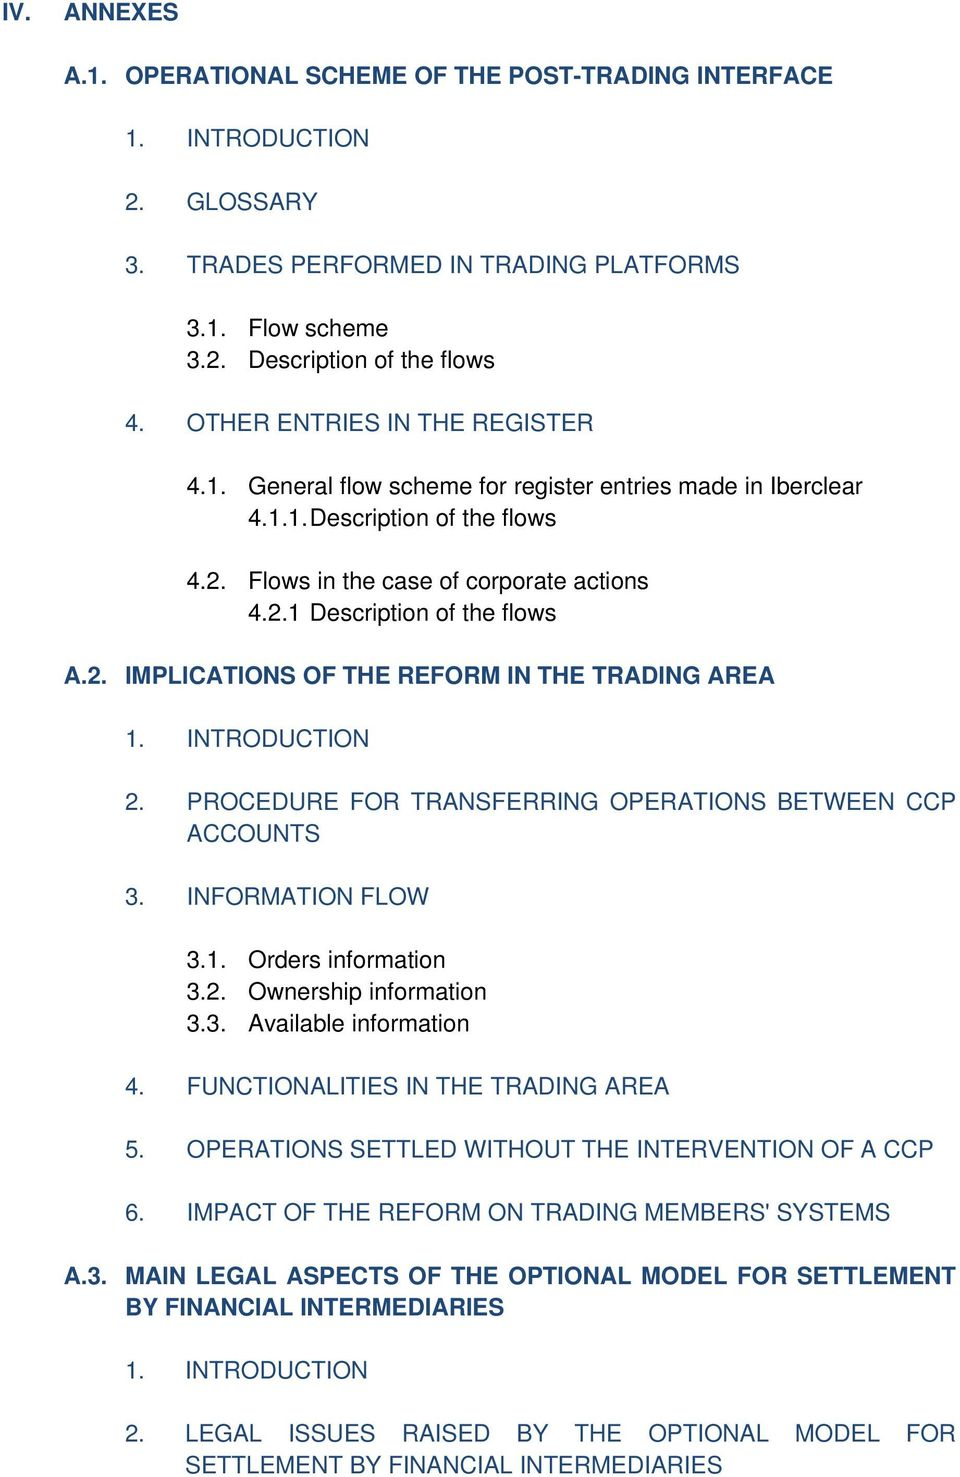 2. IMPLICATIONS OF THE REFORM IN THE TRADING AREA 1. INTRODUCTION 2. PROCEDURE FOR TRANSFERRING OPERATIONS BETWEEN CCP ACCOUNTS 3. INFORMATION FLOW 3.1. Orders information 3.2. Ownership information 3.